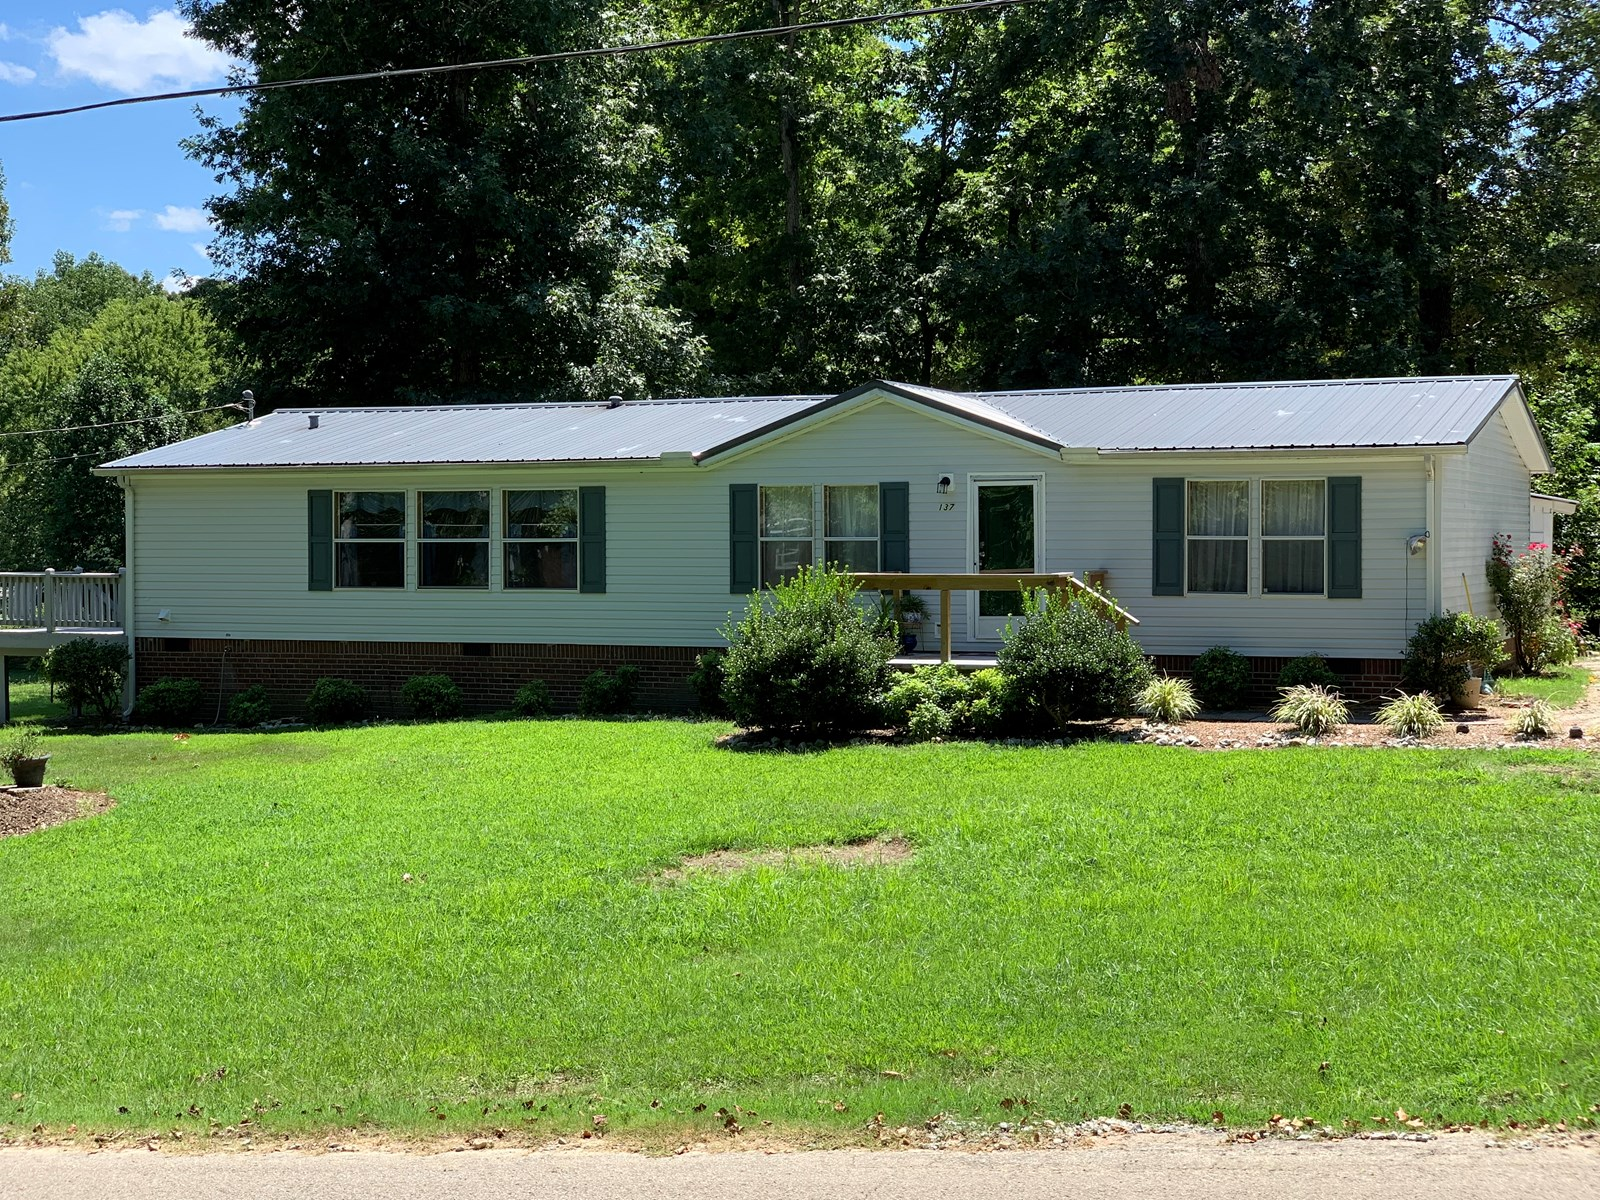 CAMDEN TENNESSEE HOME FOR SALE,